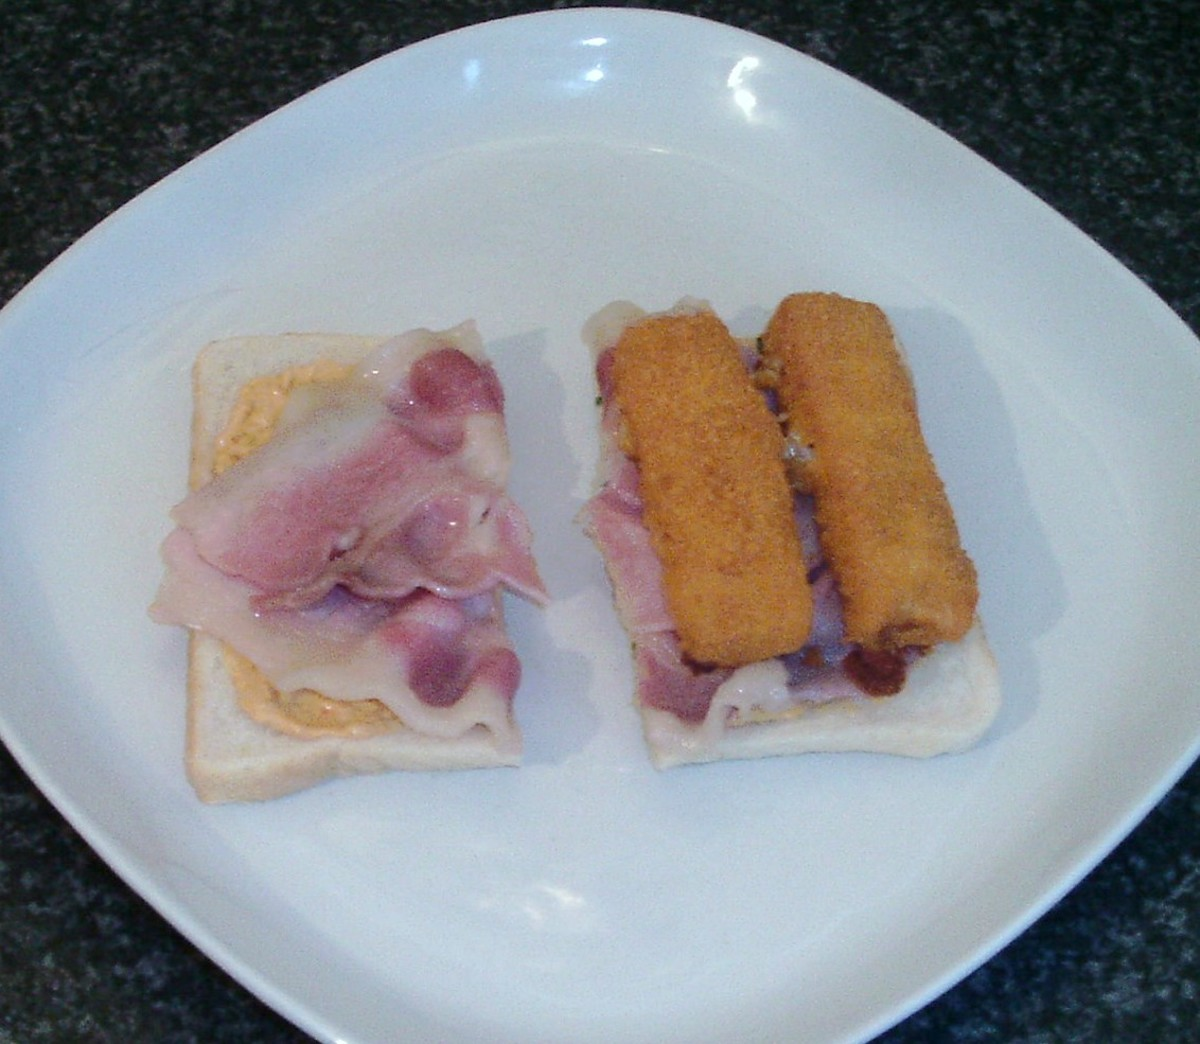 Fish fingers are laid on bacon